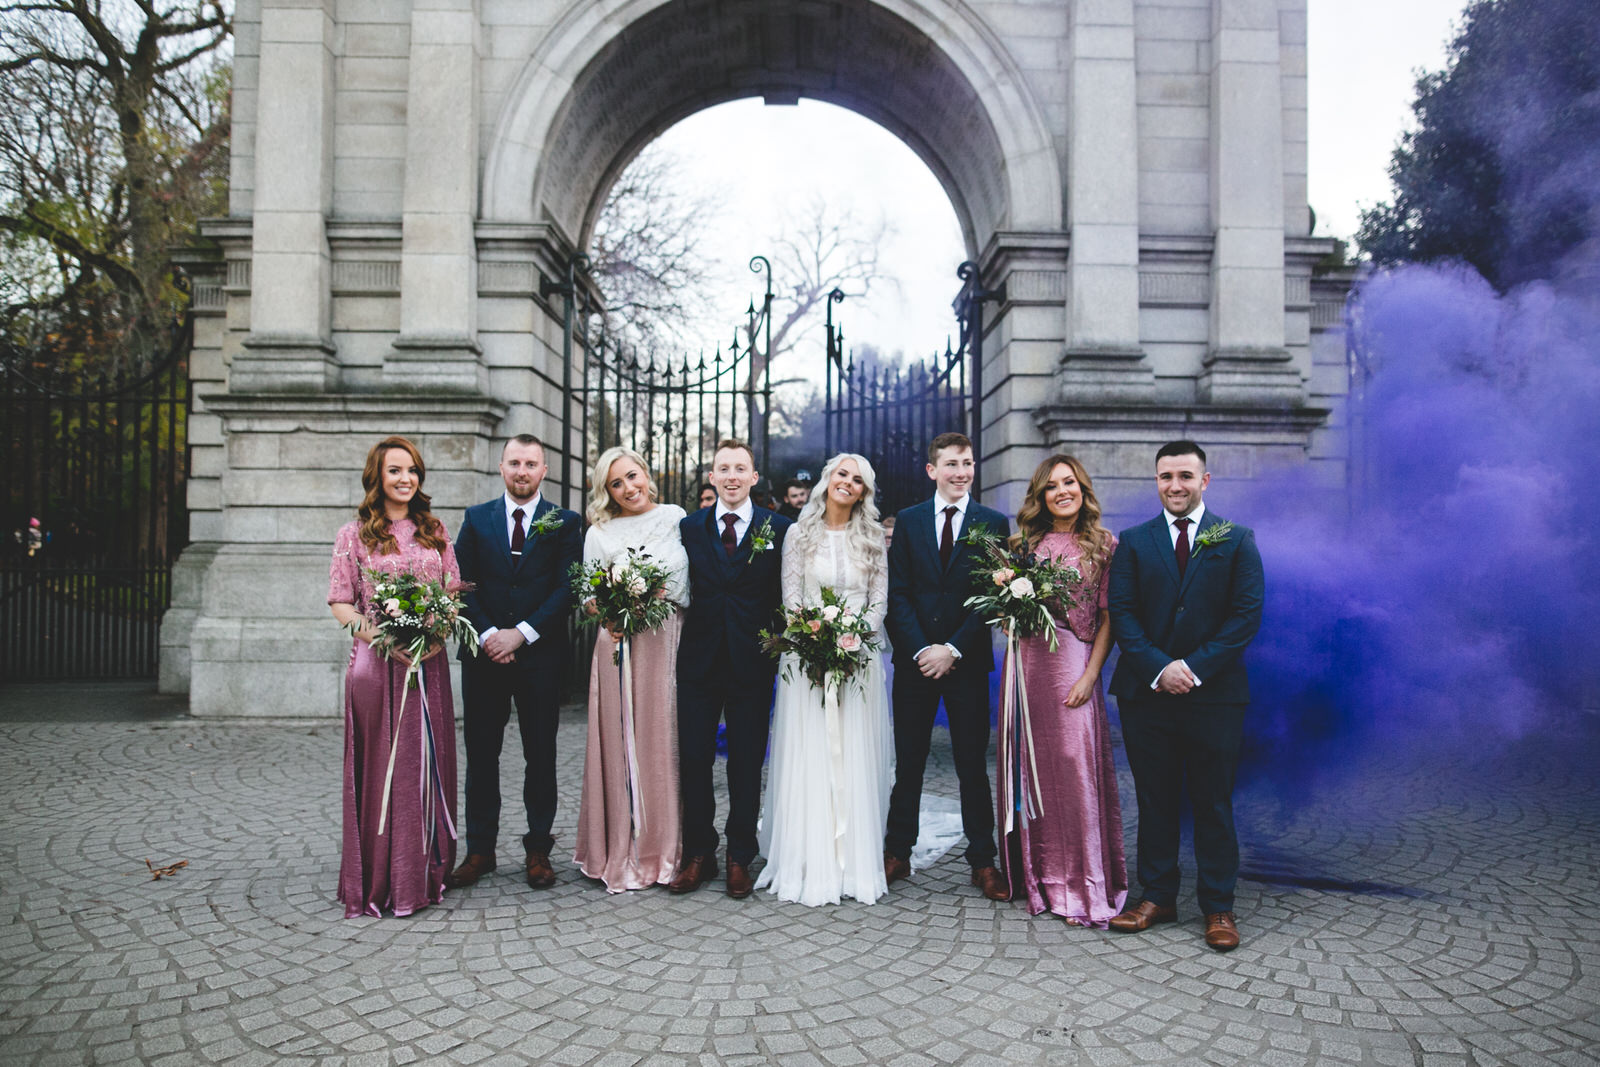 Dublin Wedding Photographer Wild Things Wed - Purple smoke bomb